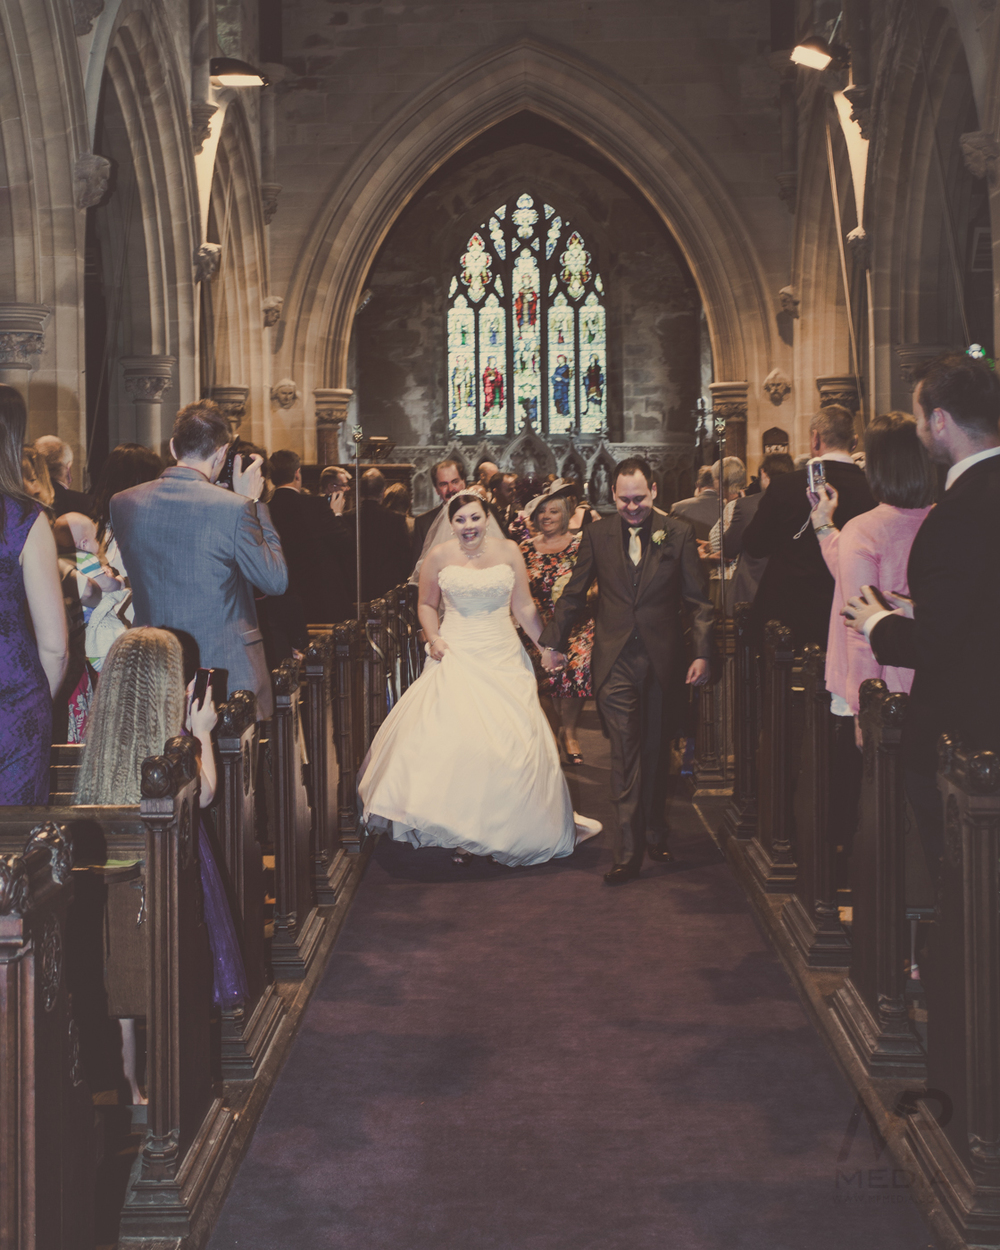 214 - Chris and Natalies Wedding (MAIN) - DO NOT SHARE THIS IMAGES ONLINE -0231.JPG